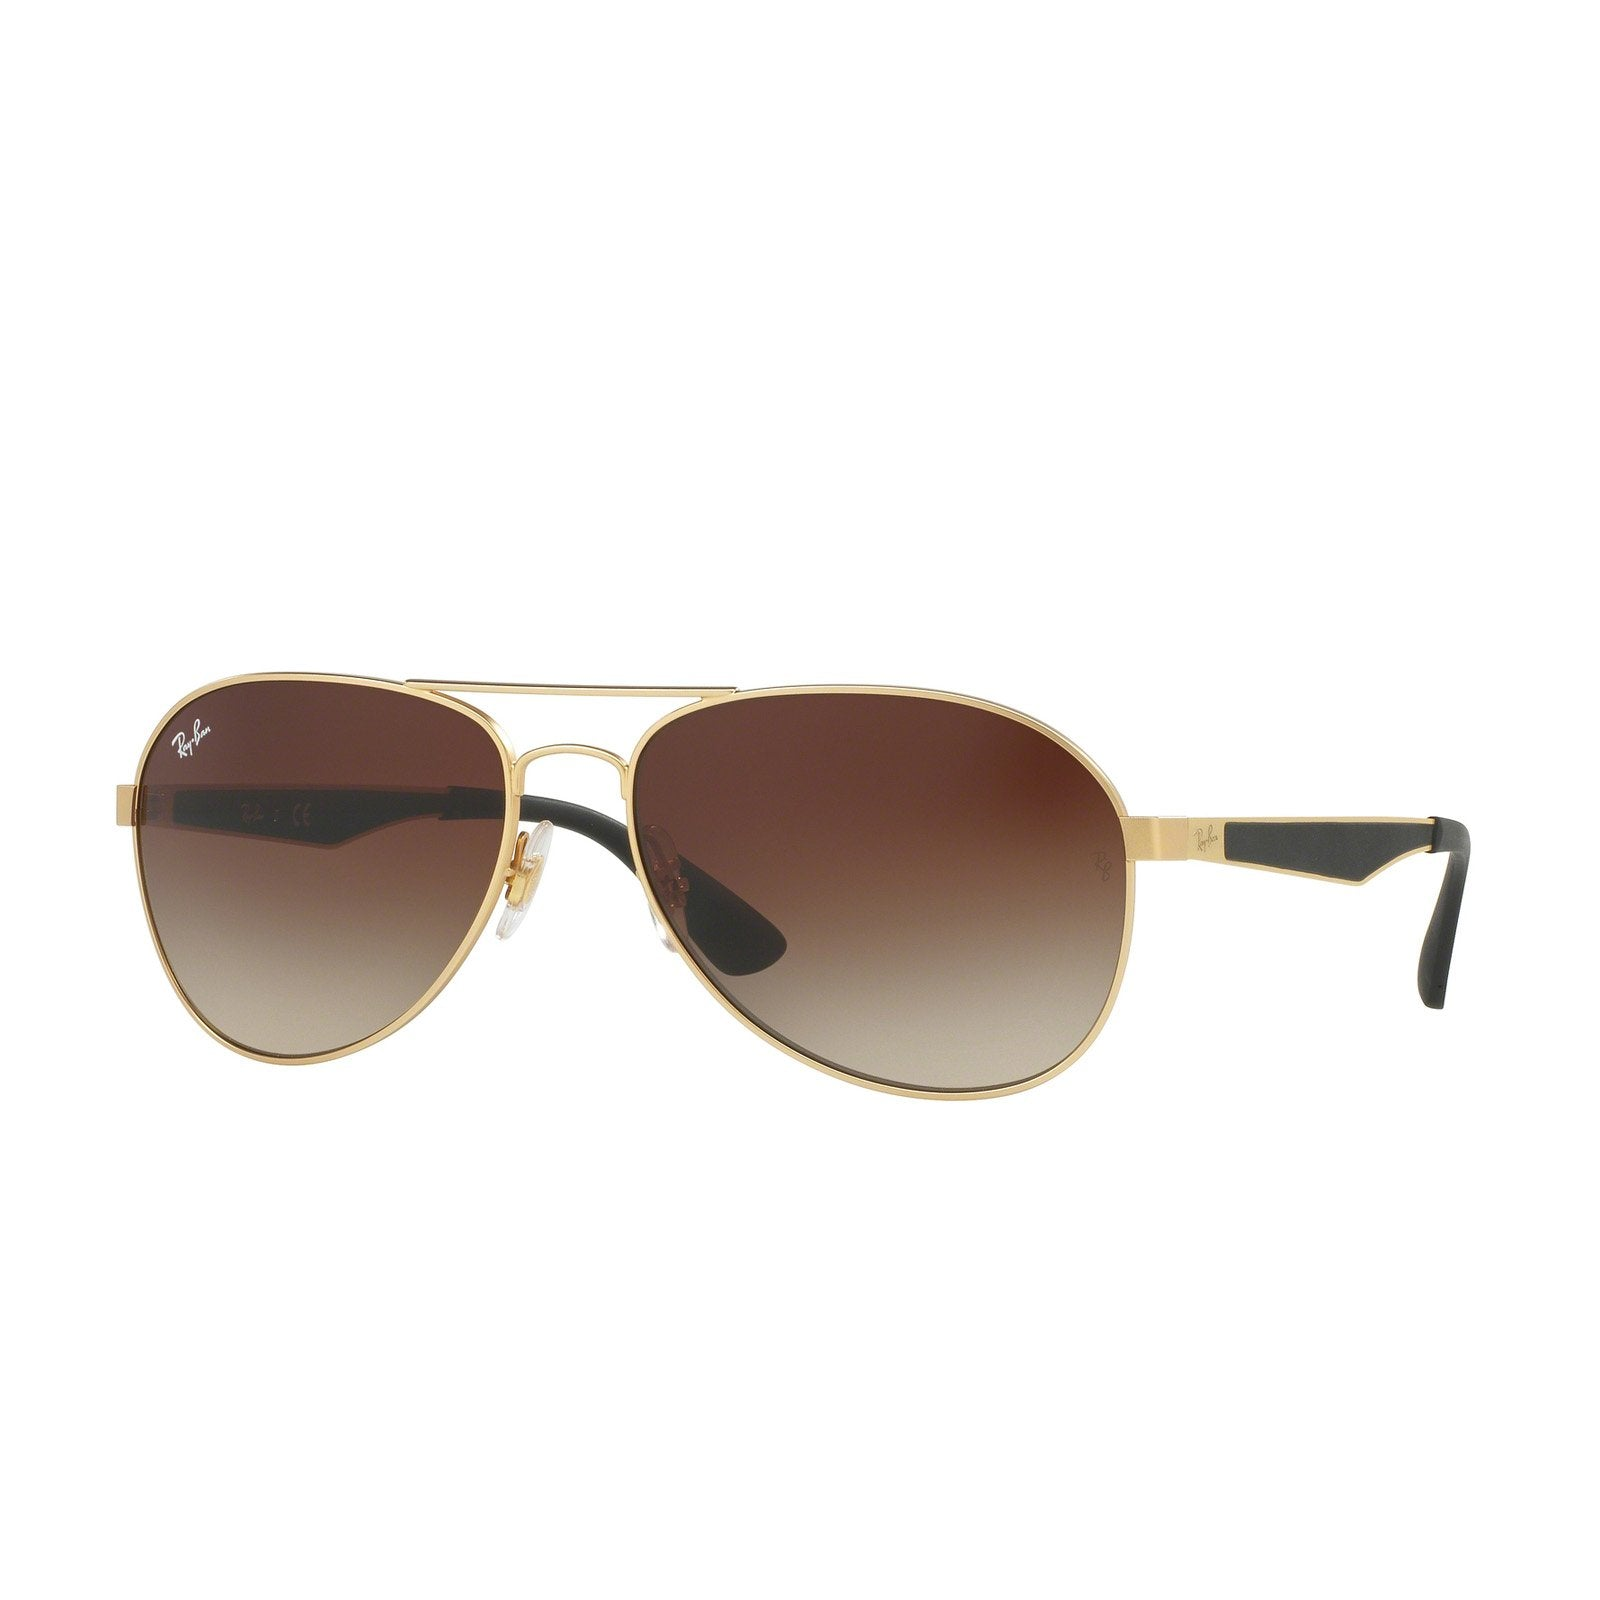 Ray-Ban RB3549 112/13 Sunglasses